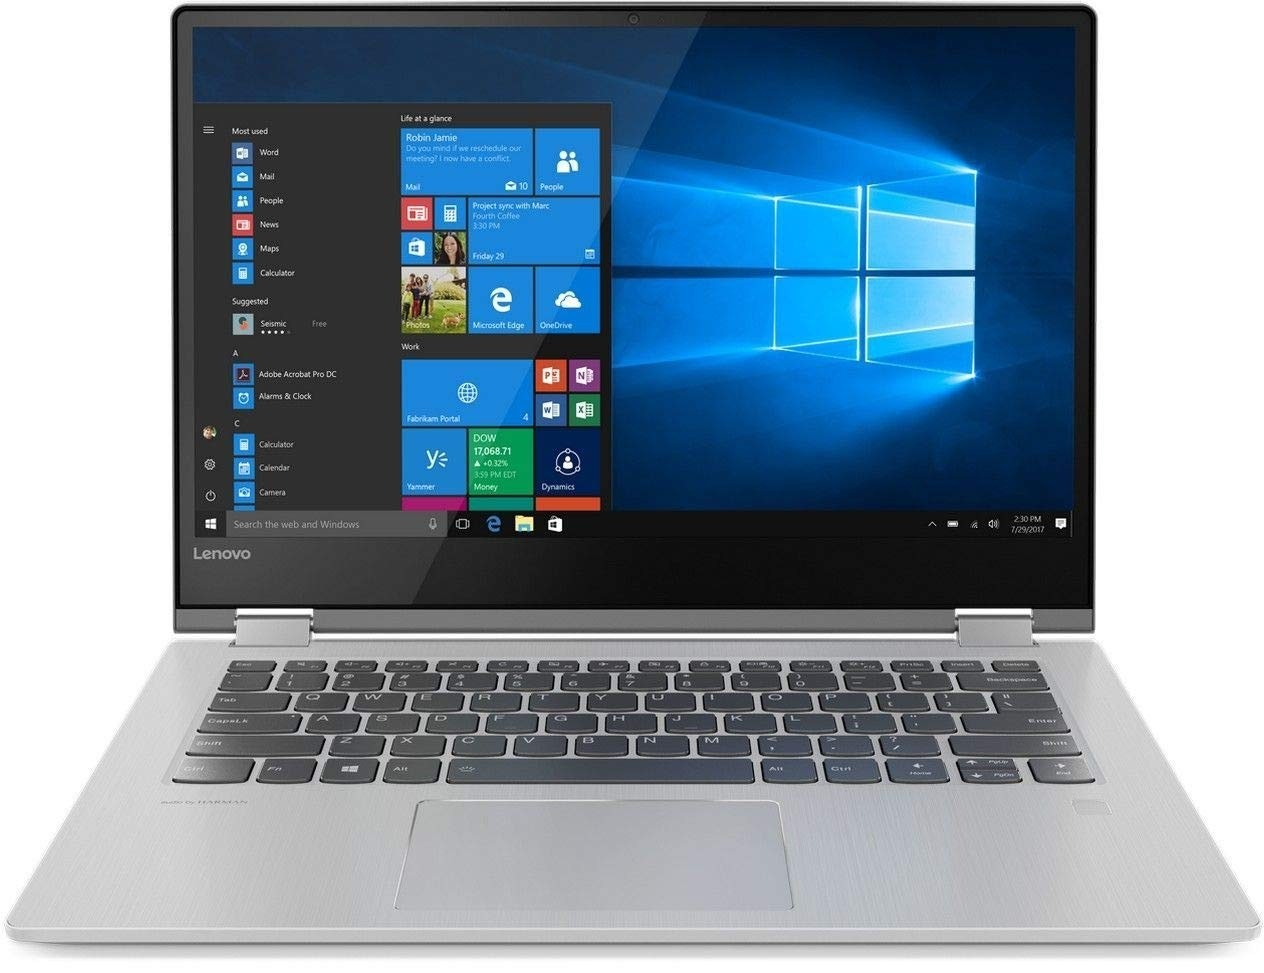 Refurbished laptops & desktops - Refurbished Lenovo Yoga 530-14IKB D 81EK00ACIN/Intel Ci5-8250U 1.6Ghz/8GB/512GB SSD/2GB Nvidia Graphics/Win 10 Home/14 Inch FHD Non-Touch/Minerial Grey